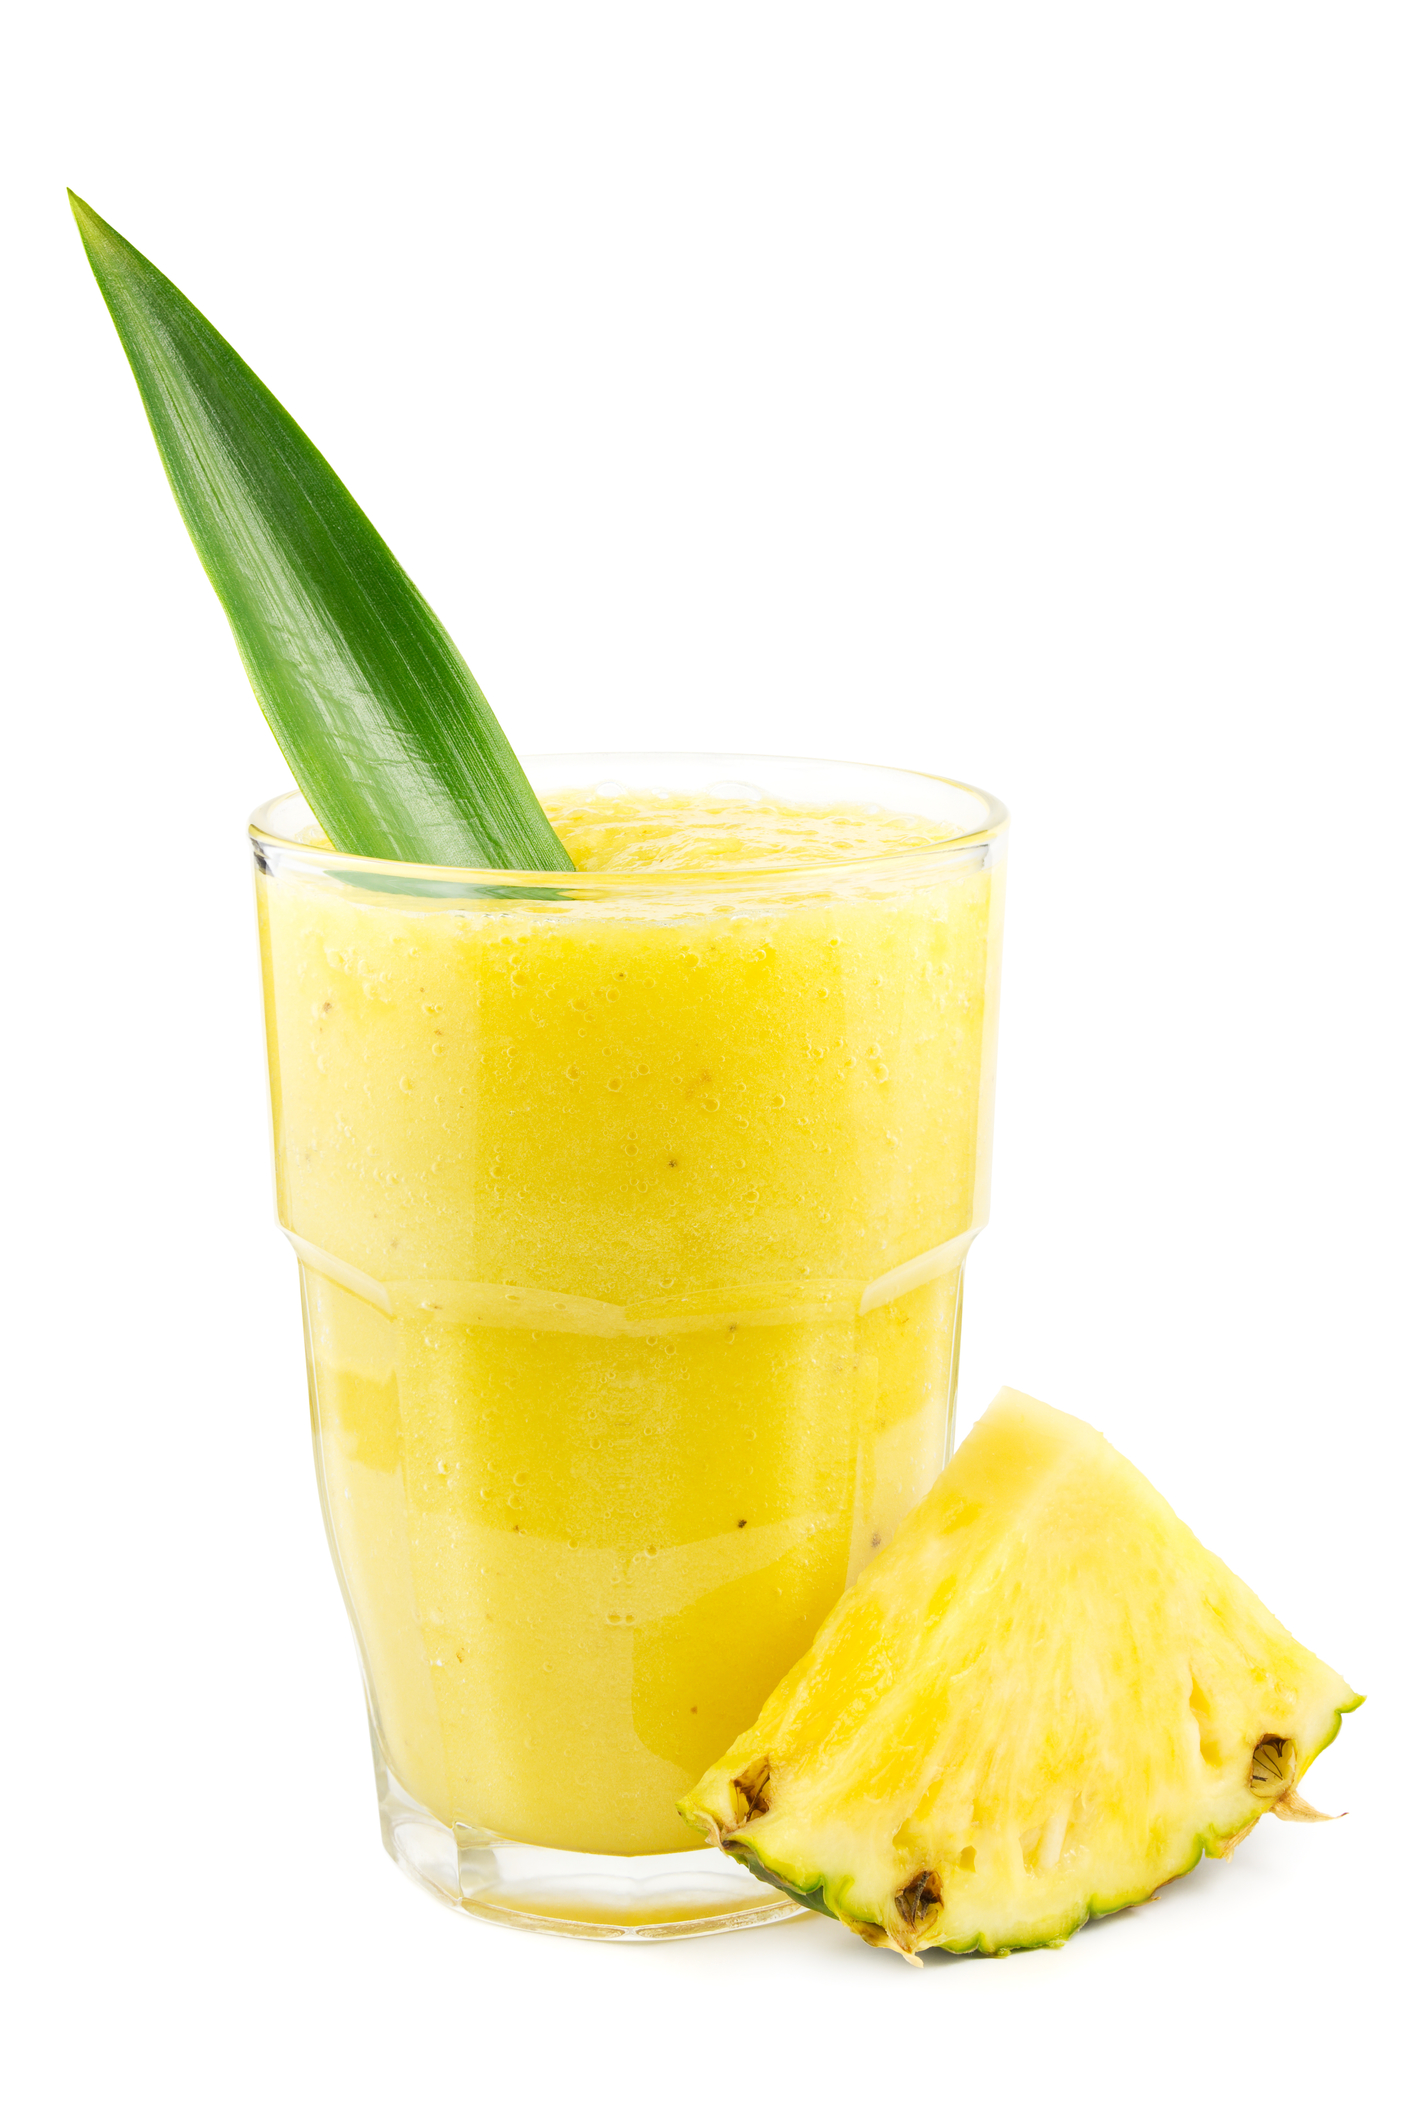 pineapple-smoothie-25497834